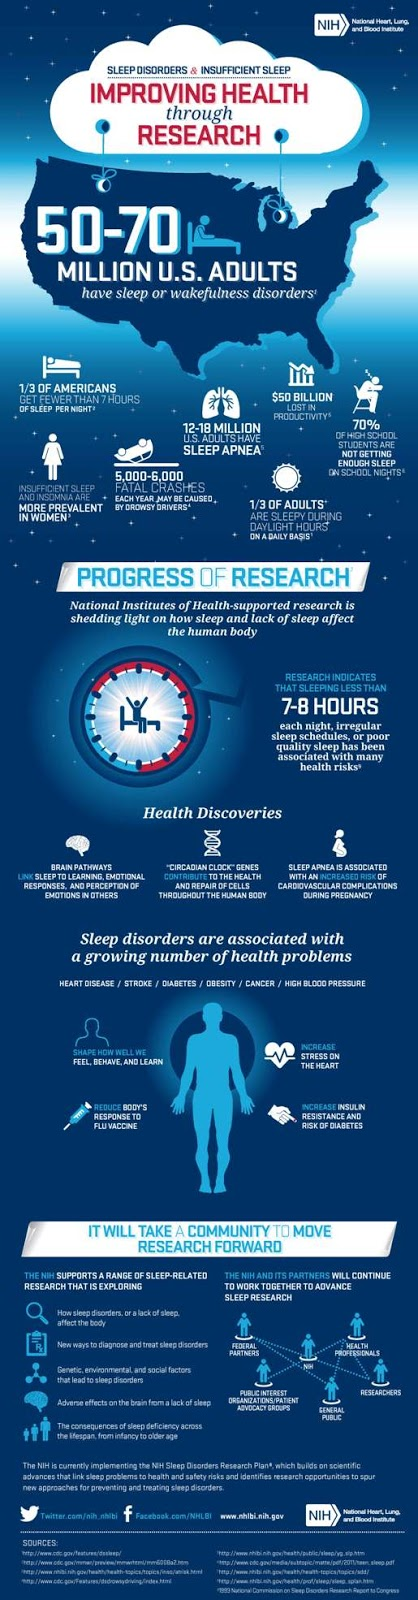 Sleep, Infographic, NHLBI